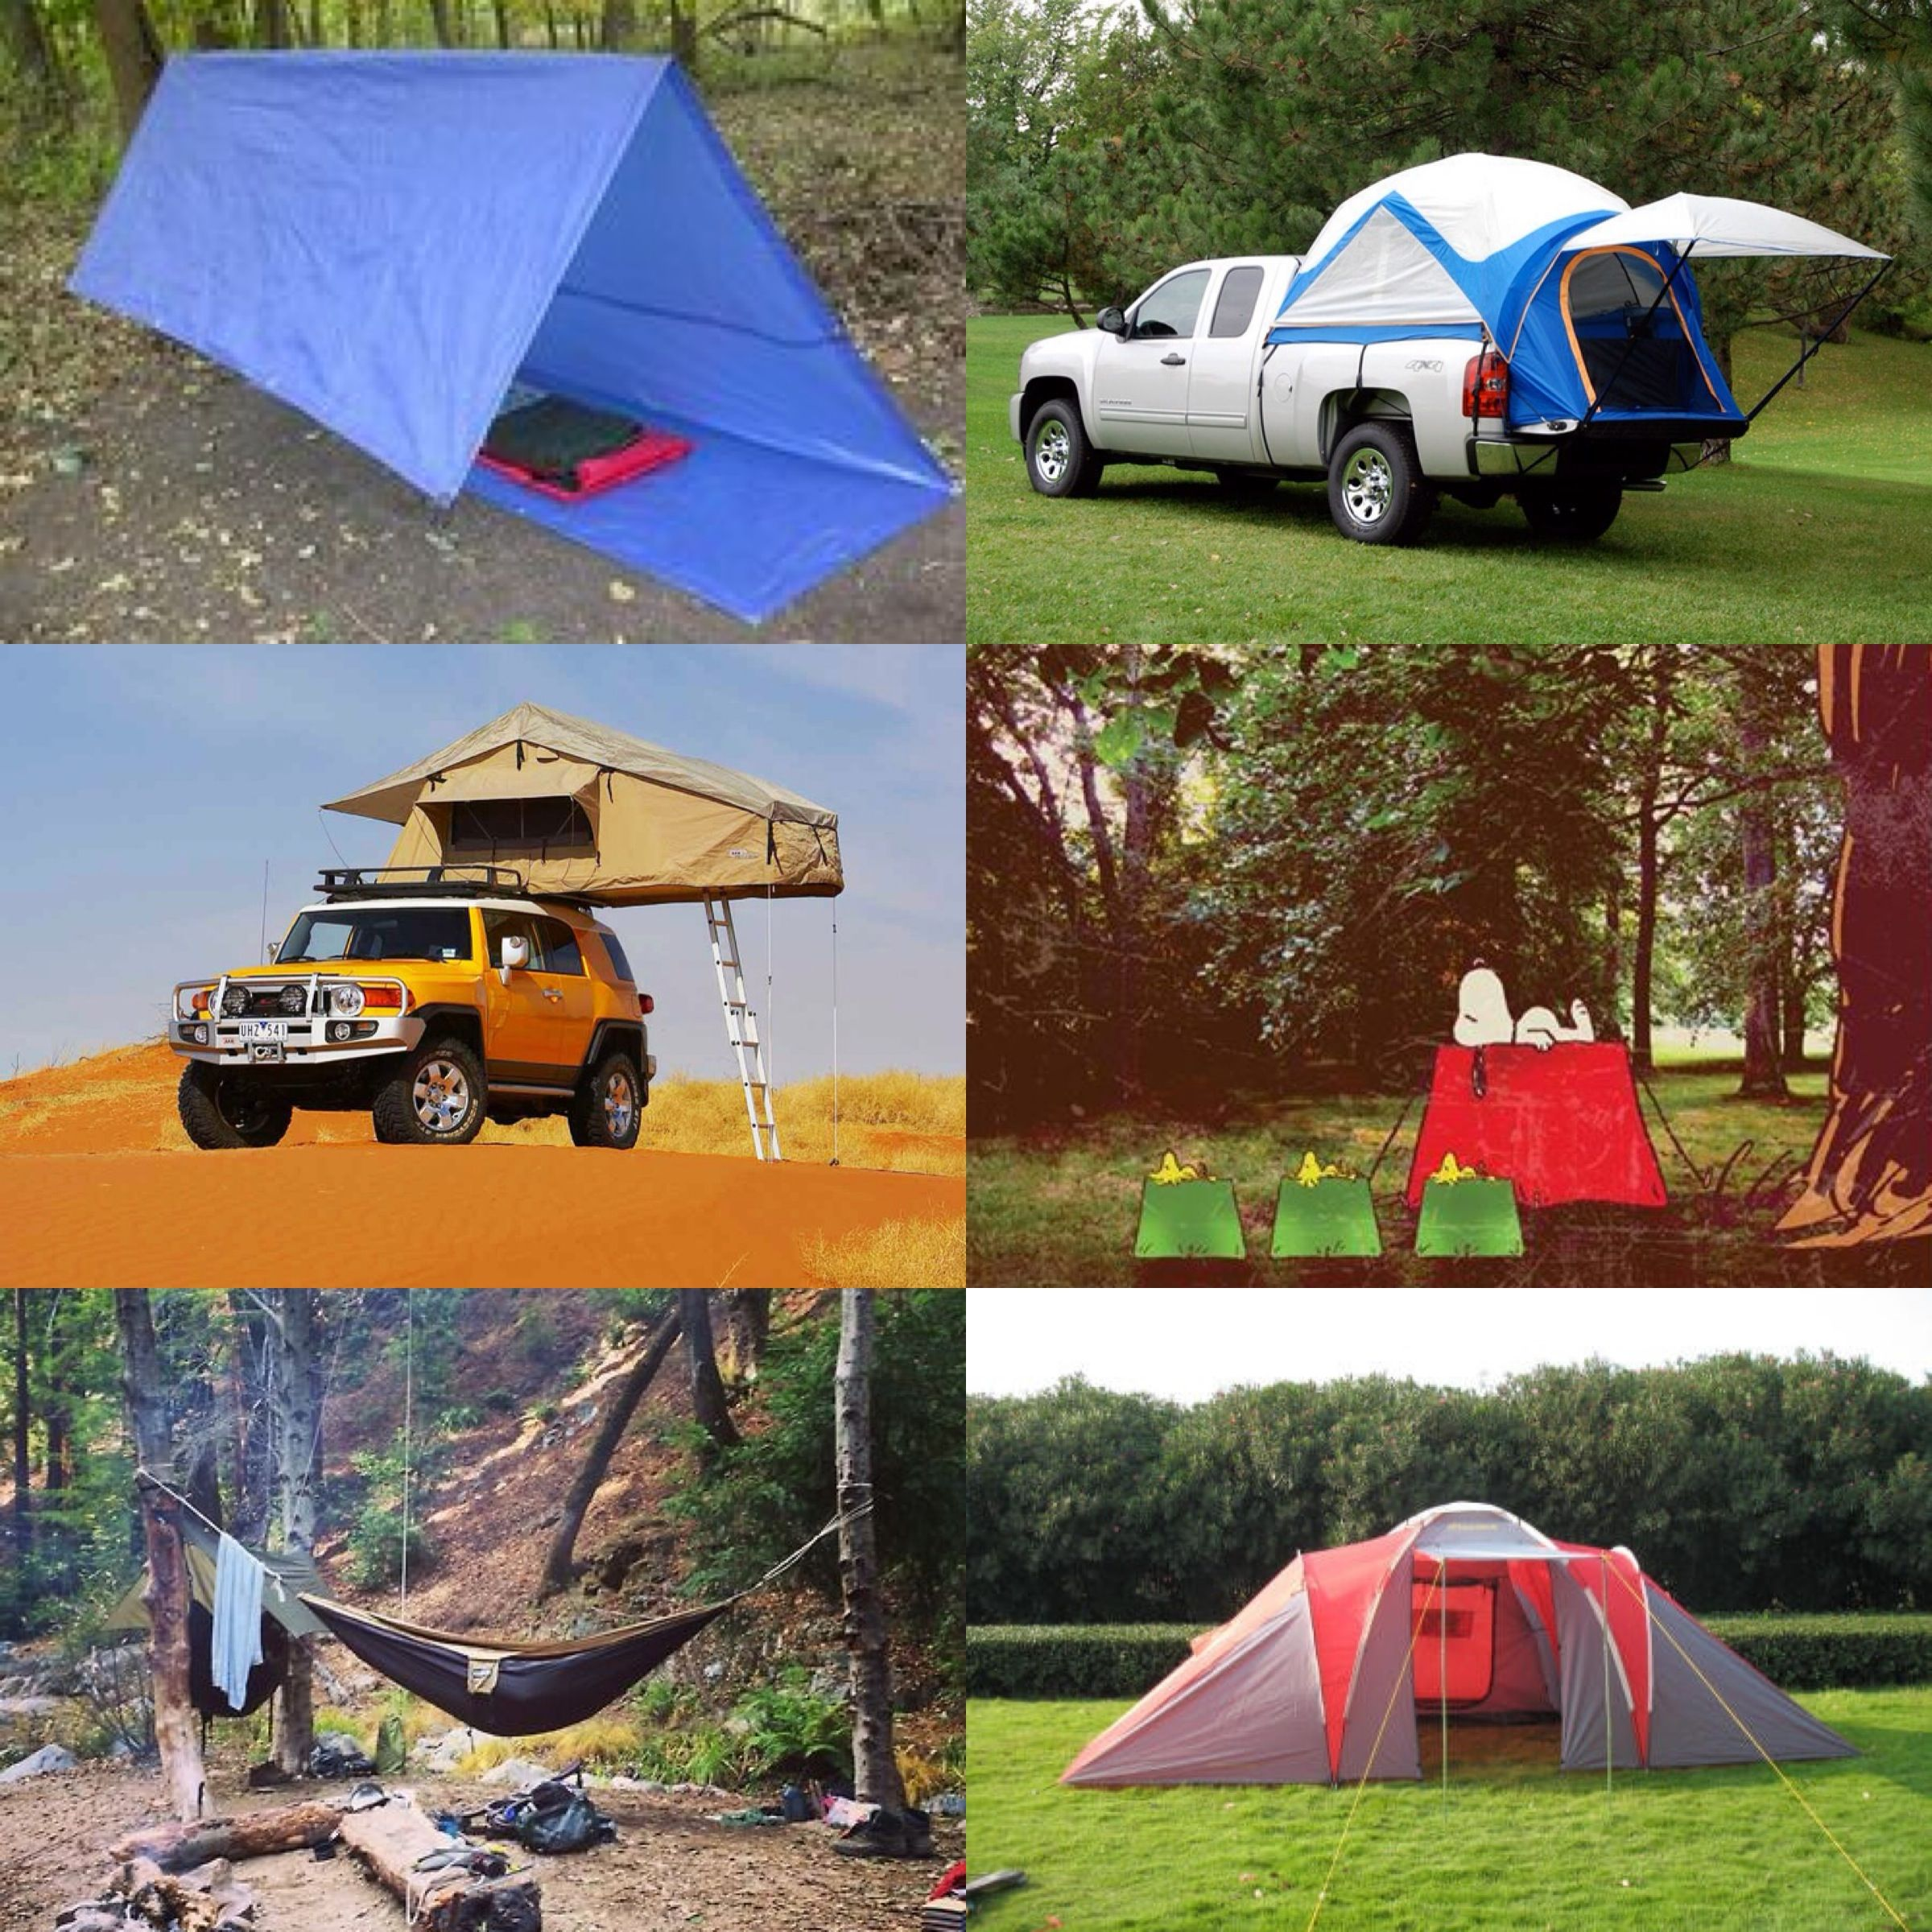 Tents & Whatu0027s your tent camping style? A simple tarp hammock roof tent ...